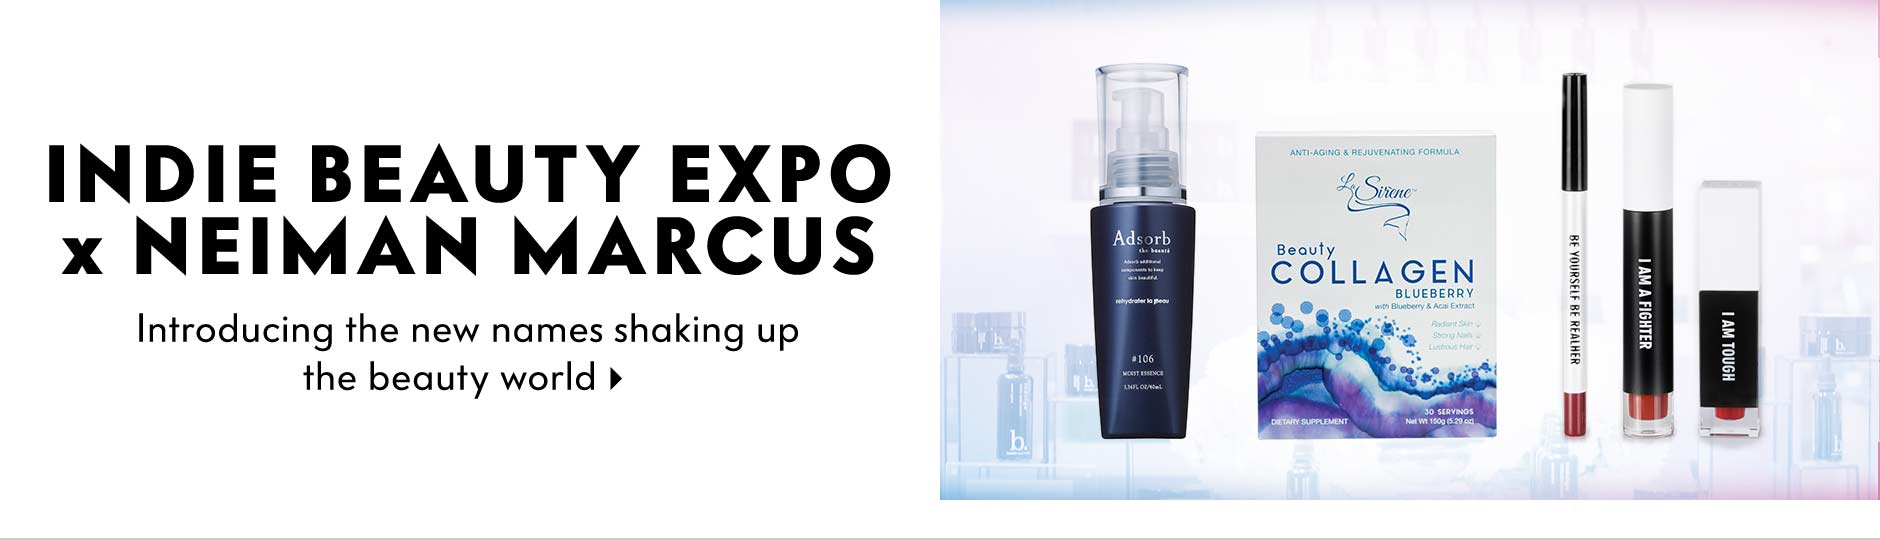 Indie Beauty Expo x Neiman Marcus - Introducing the new names shaking up the beauty world